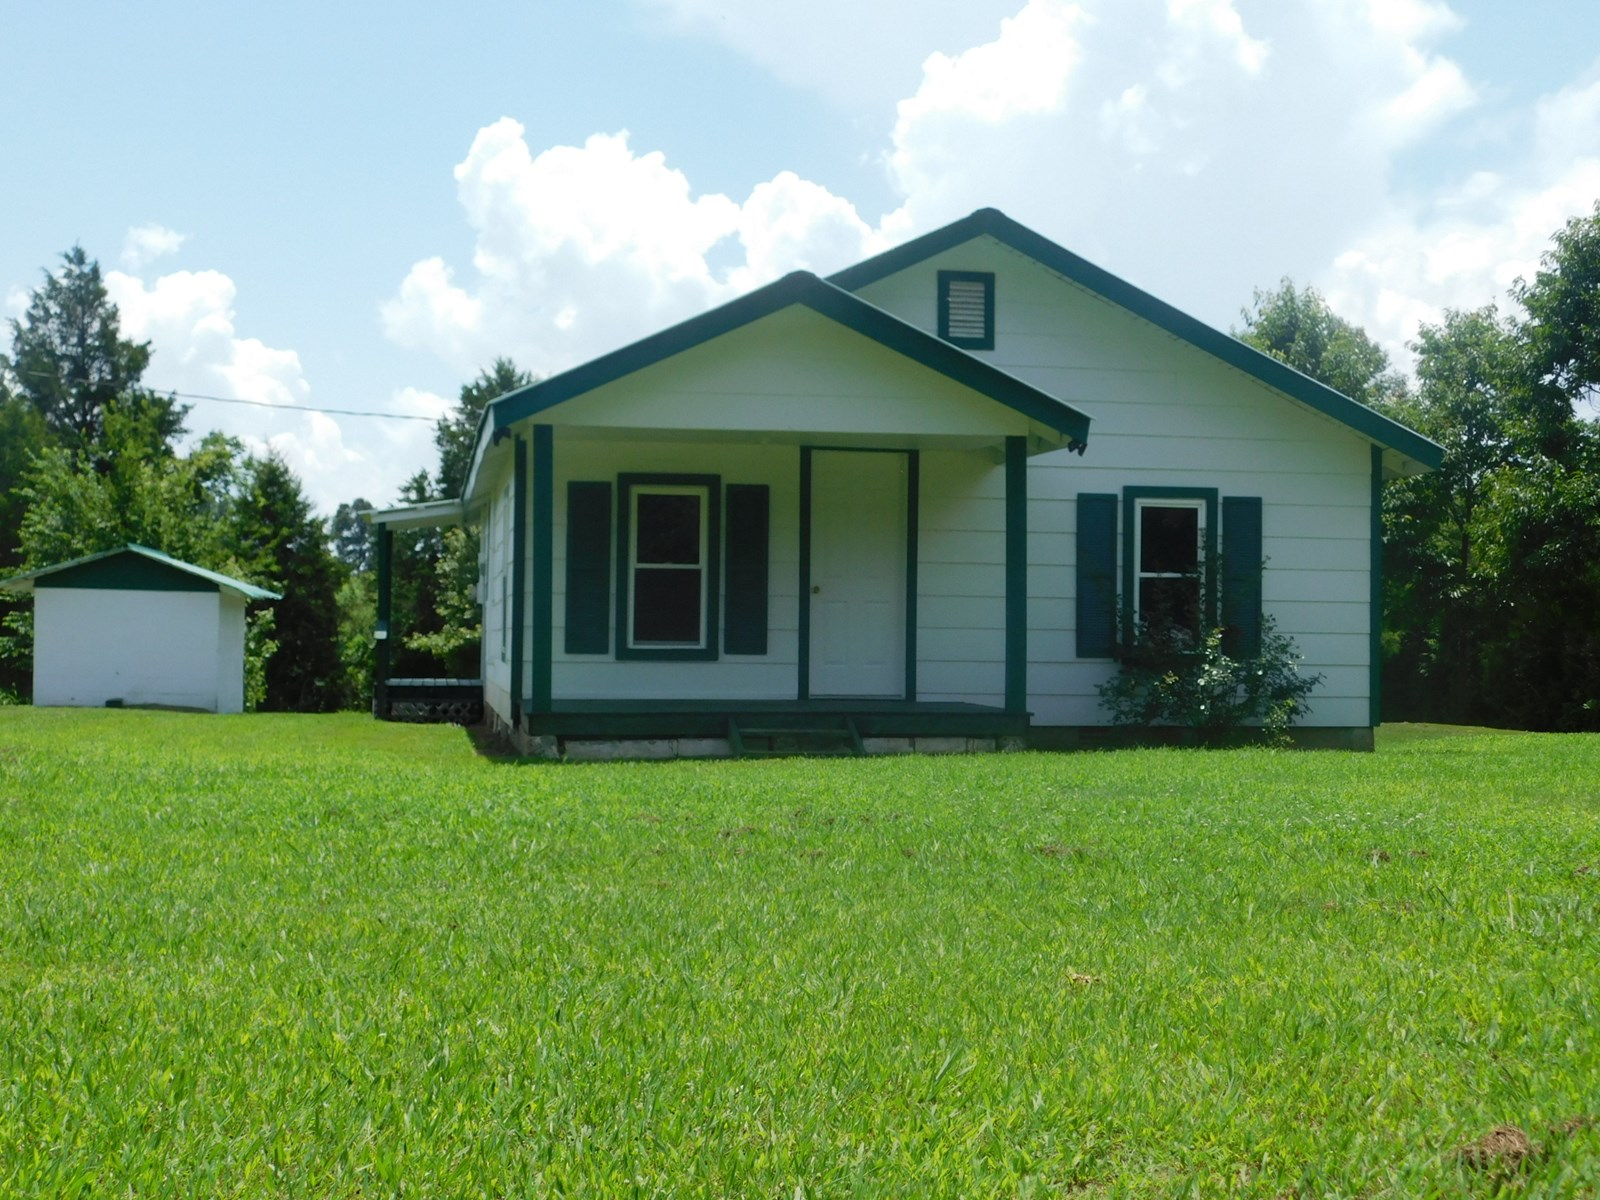 NEWLY REMODELED AFFORDABLE COUNTRY HOME FENCING, FRUIT TREES